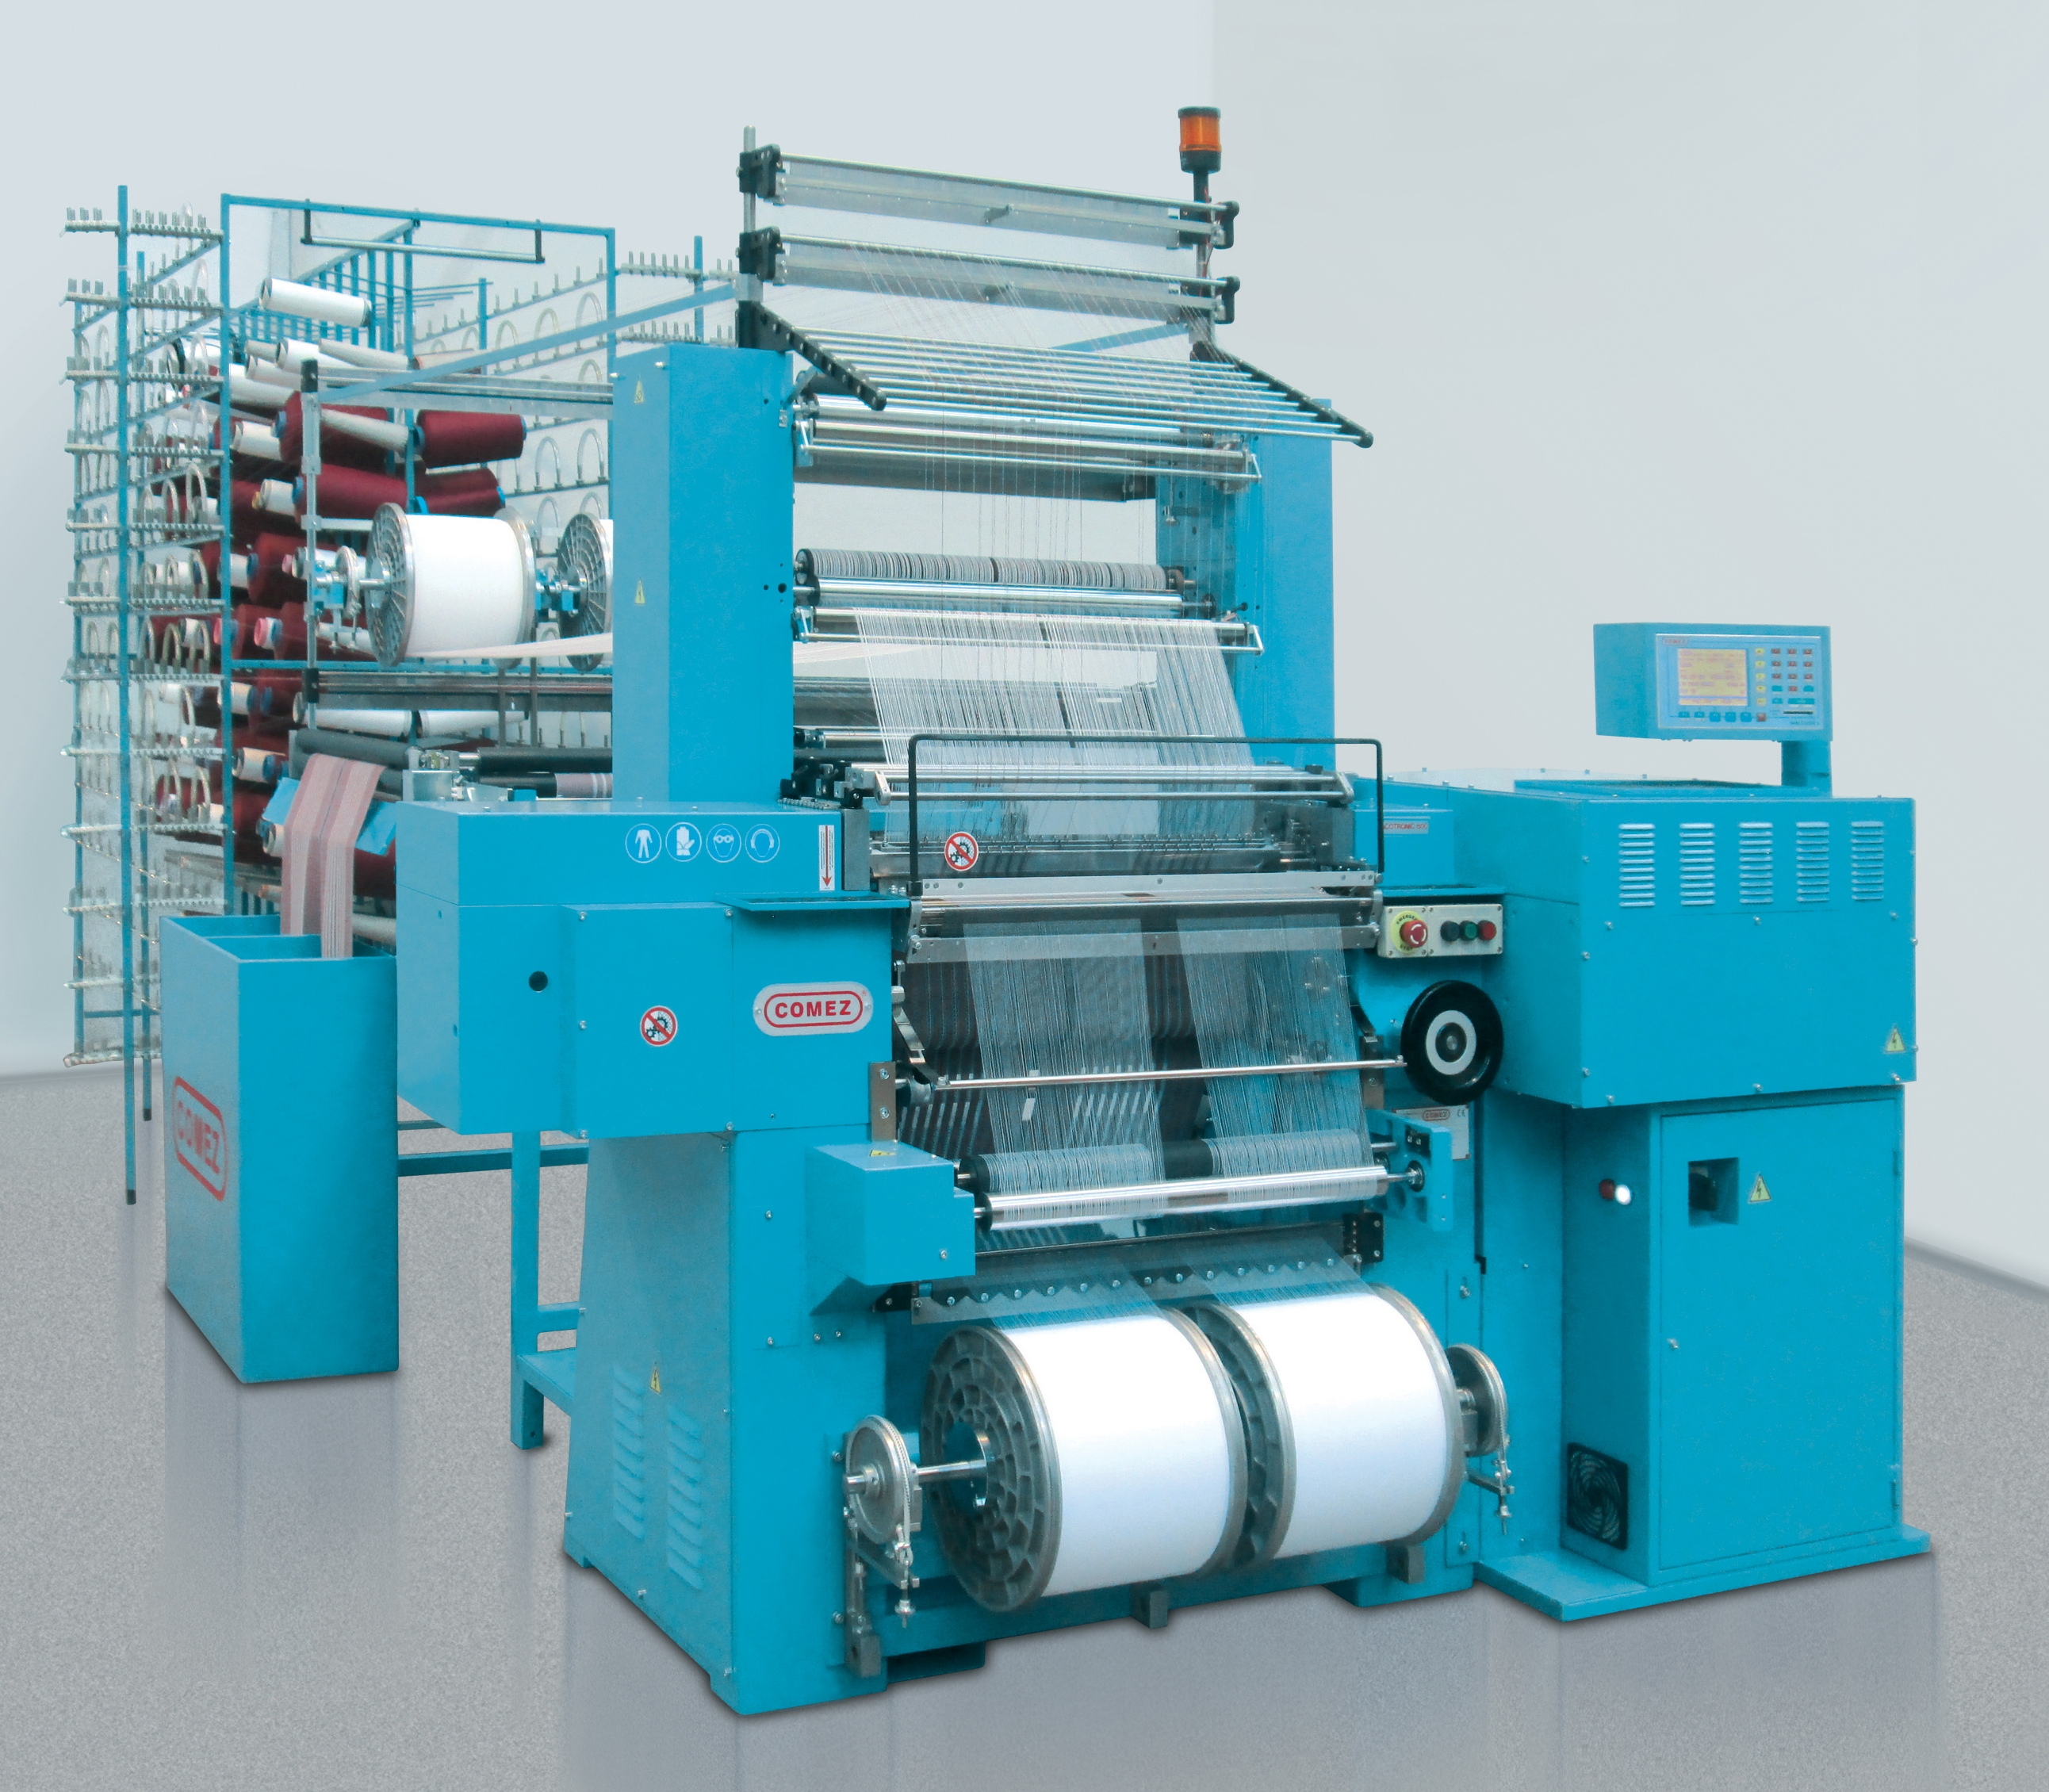 Knitting Machines Unlimited : Jakob muller ag exhibits variety of textile technology at